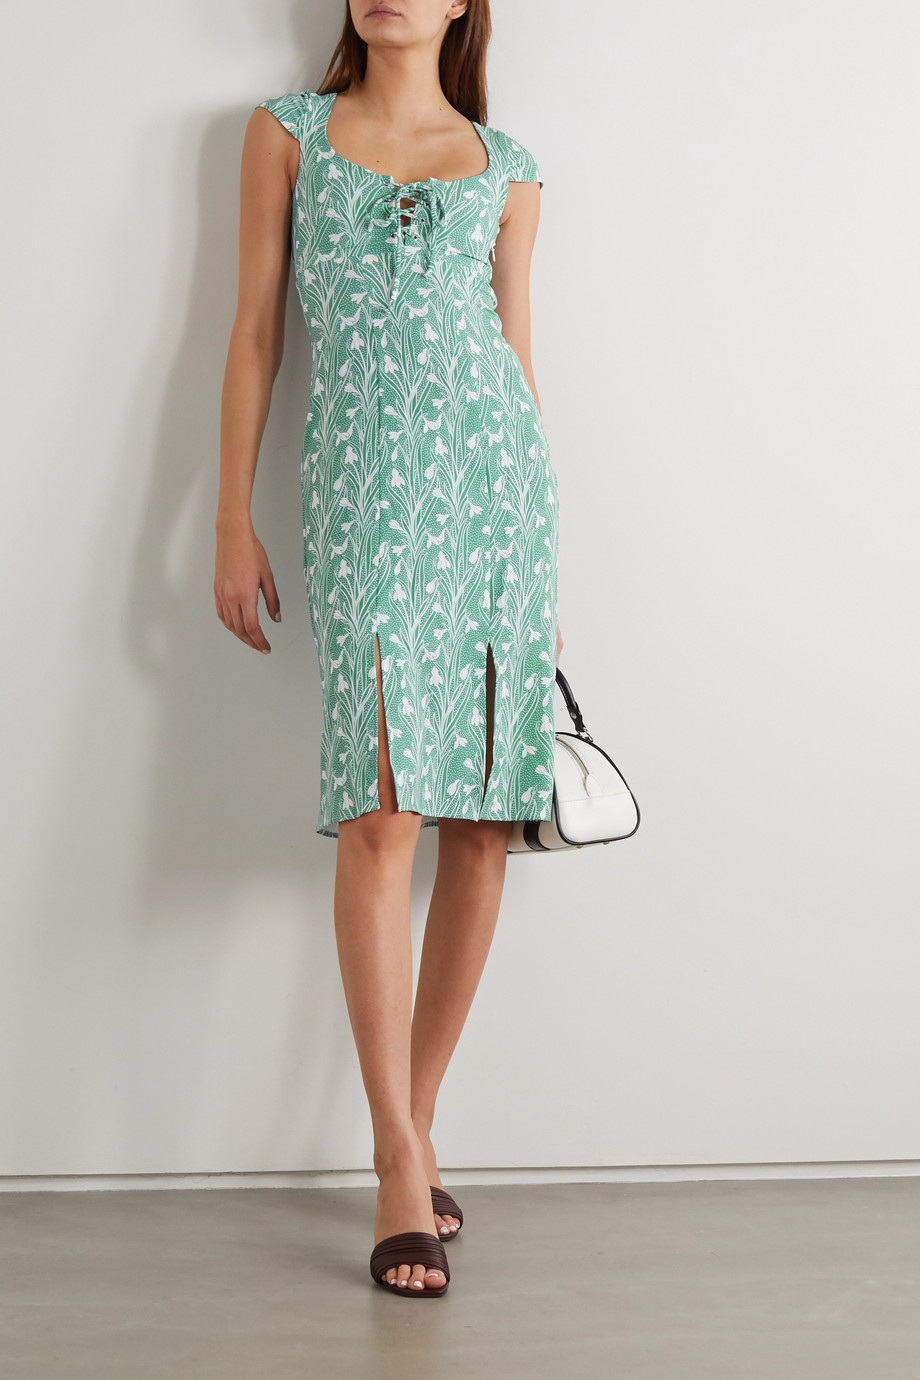 Miaou + NET SUSTAIN Arielle lace-up floral-print stretch-crepe dress